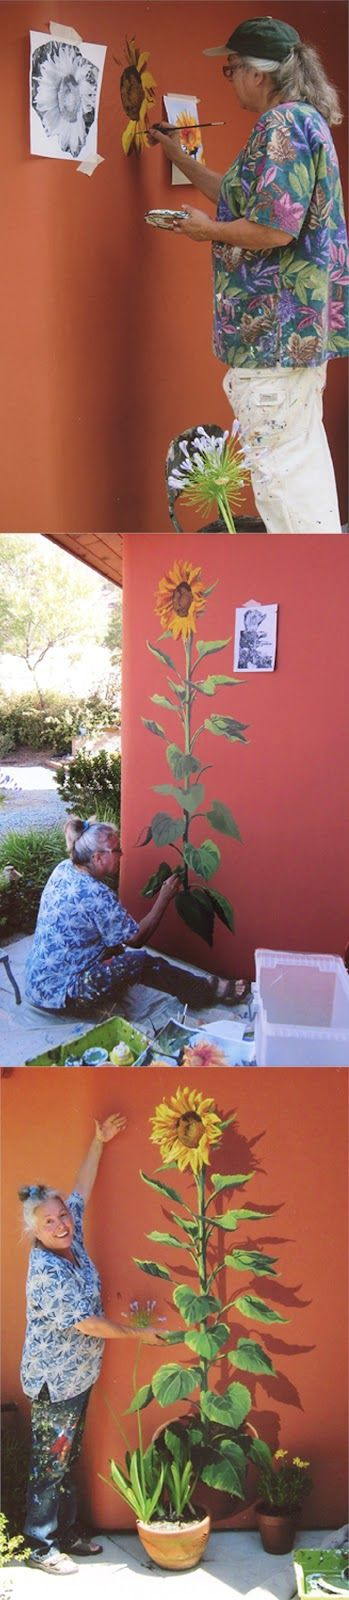 Sunflower mural art by Nadi Spencer...very cool, but I think Bill would kill me if I painted the outside of the house!